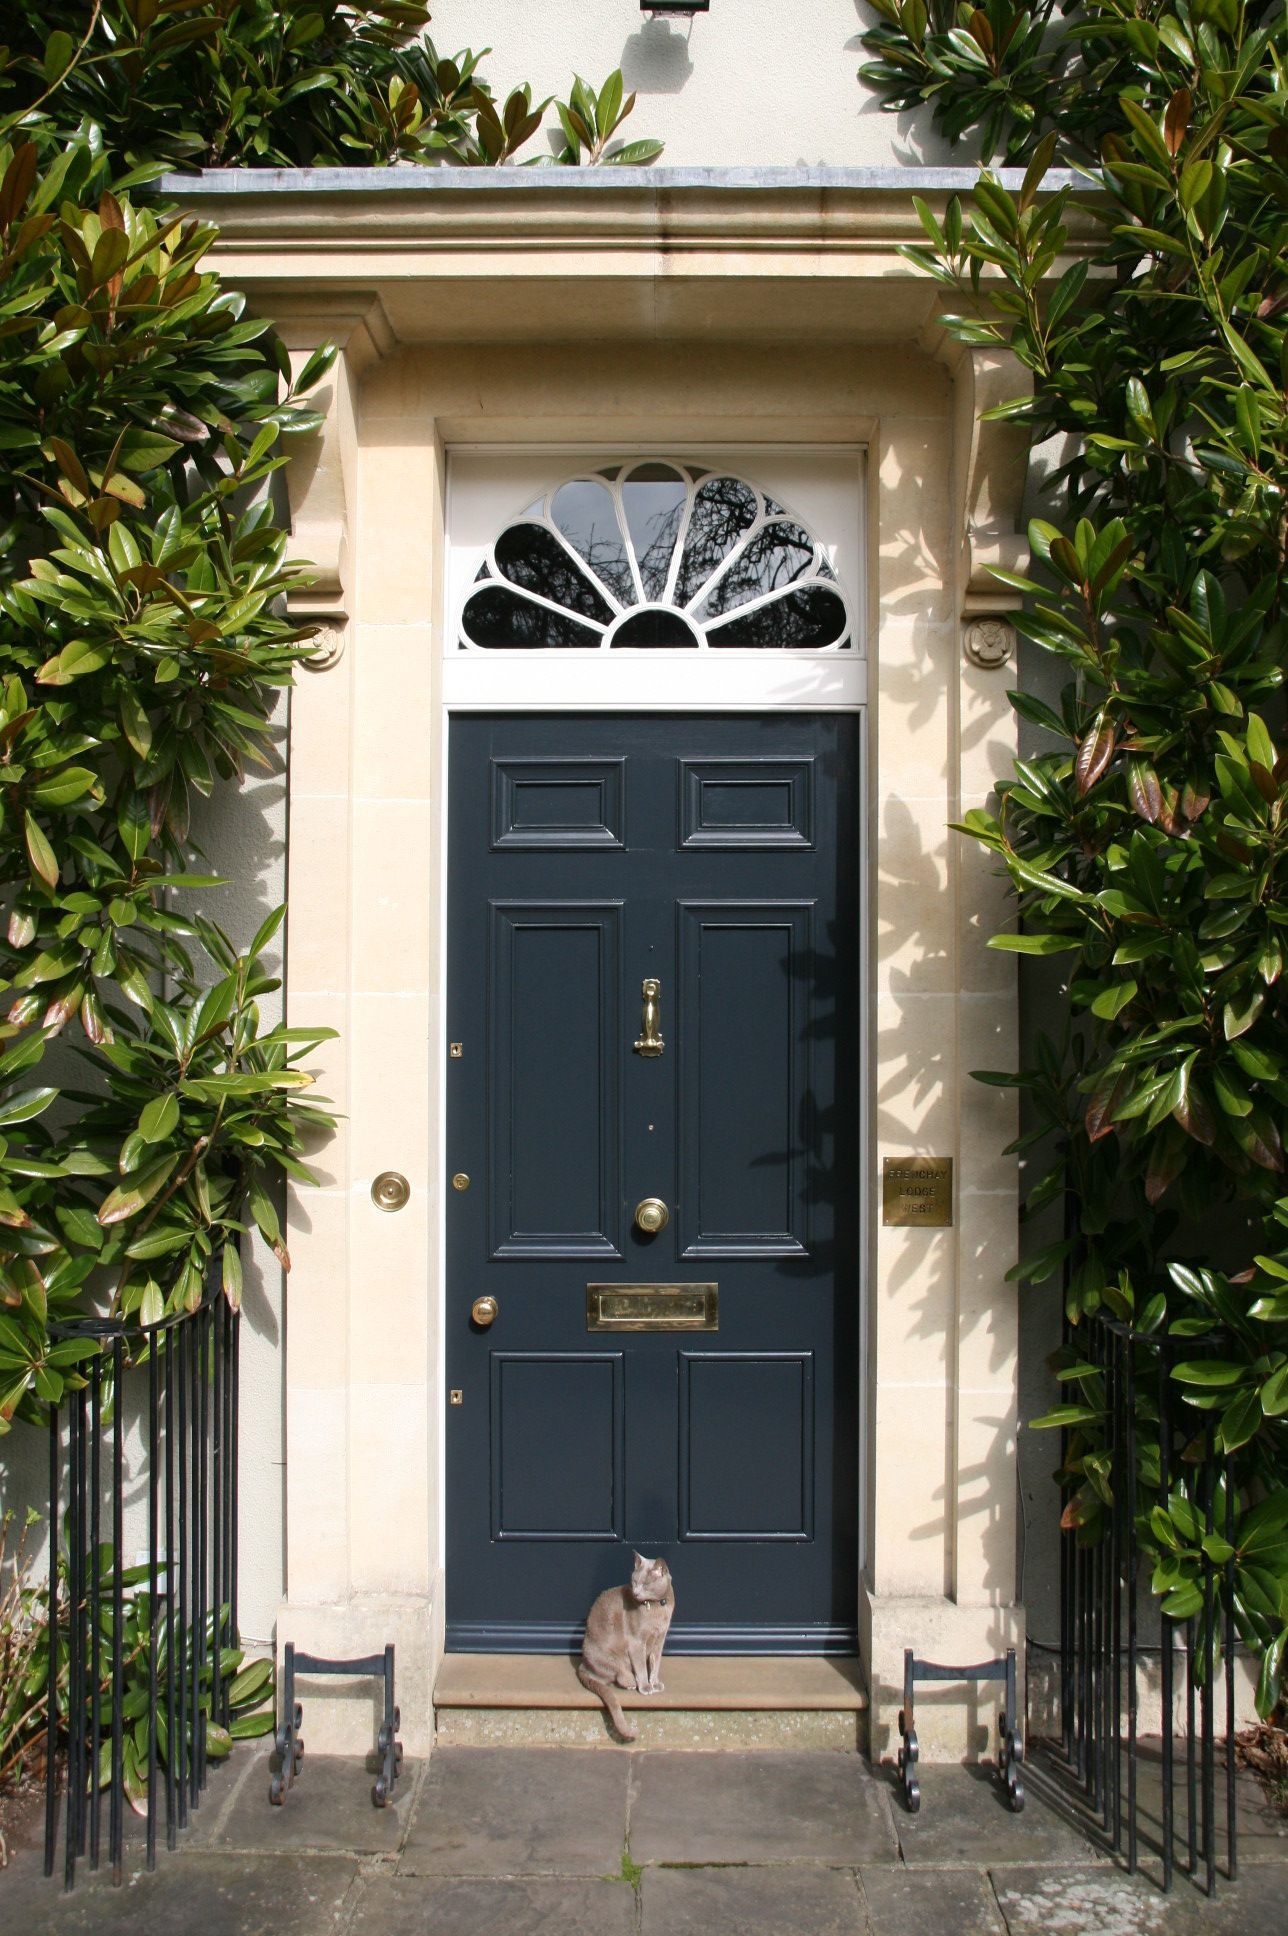 Farrow U0026 Ball Best Exterior Door Colour Gallery: Winning Entry! Clare  Winsor   UK